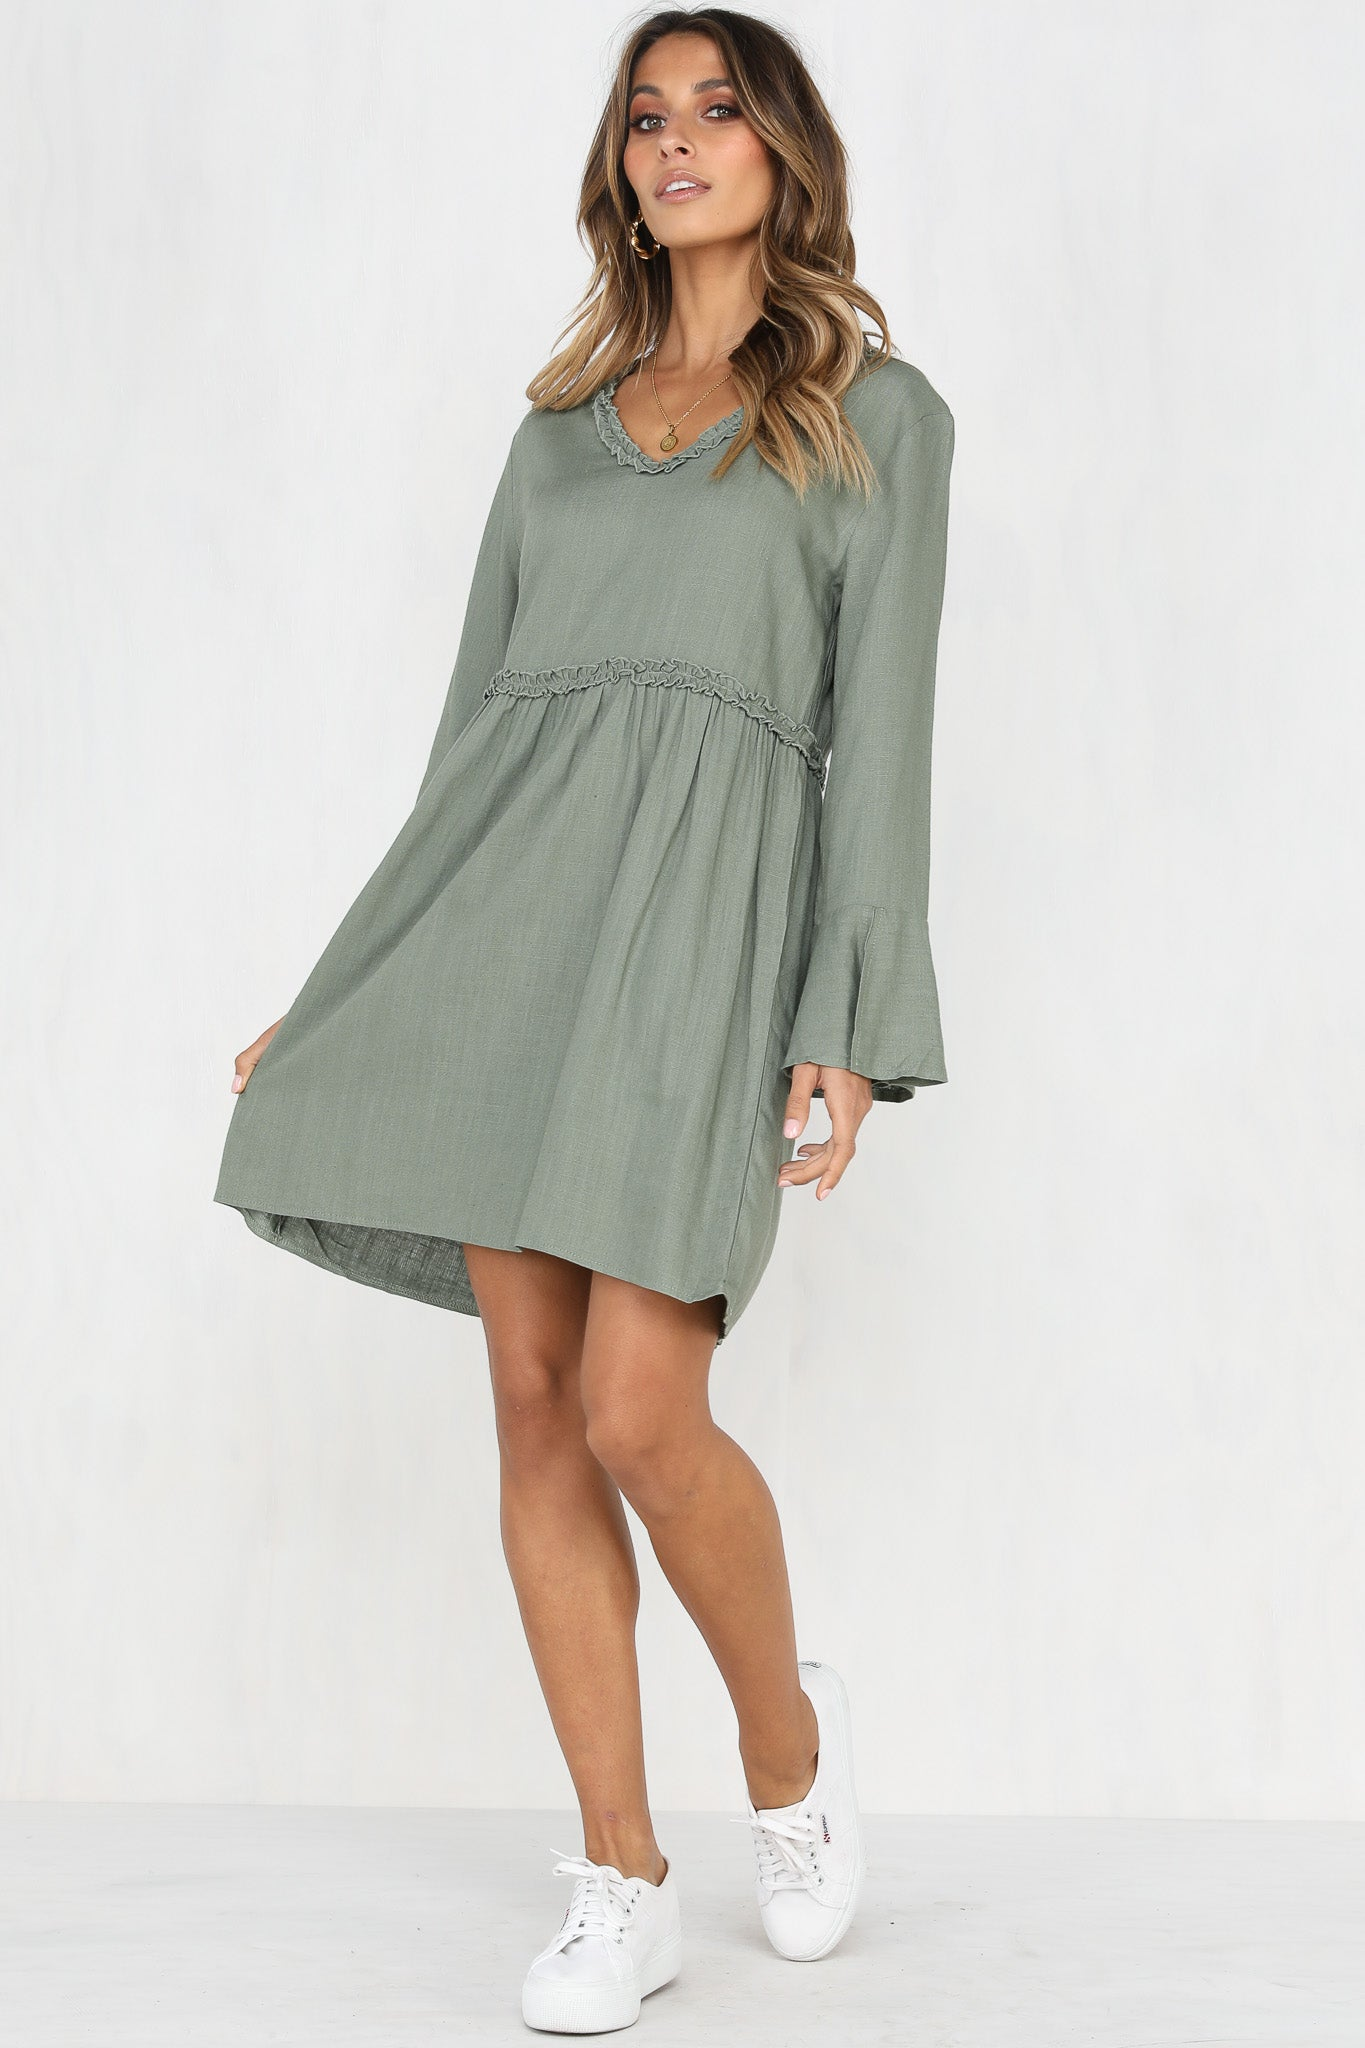 Lula Dress (Khaki)